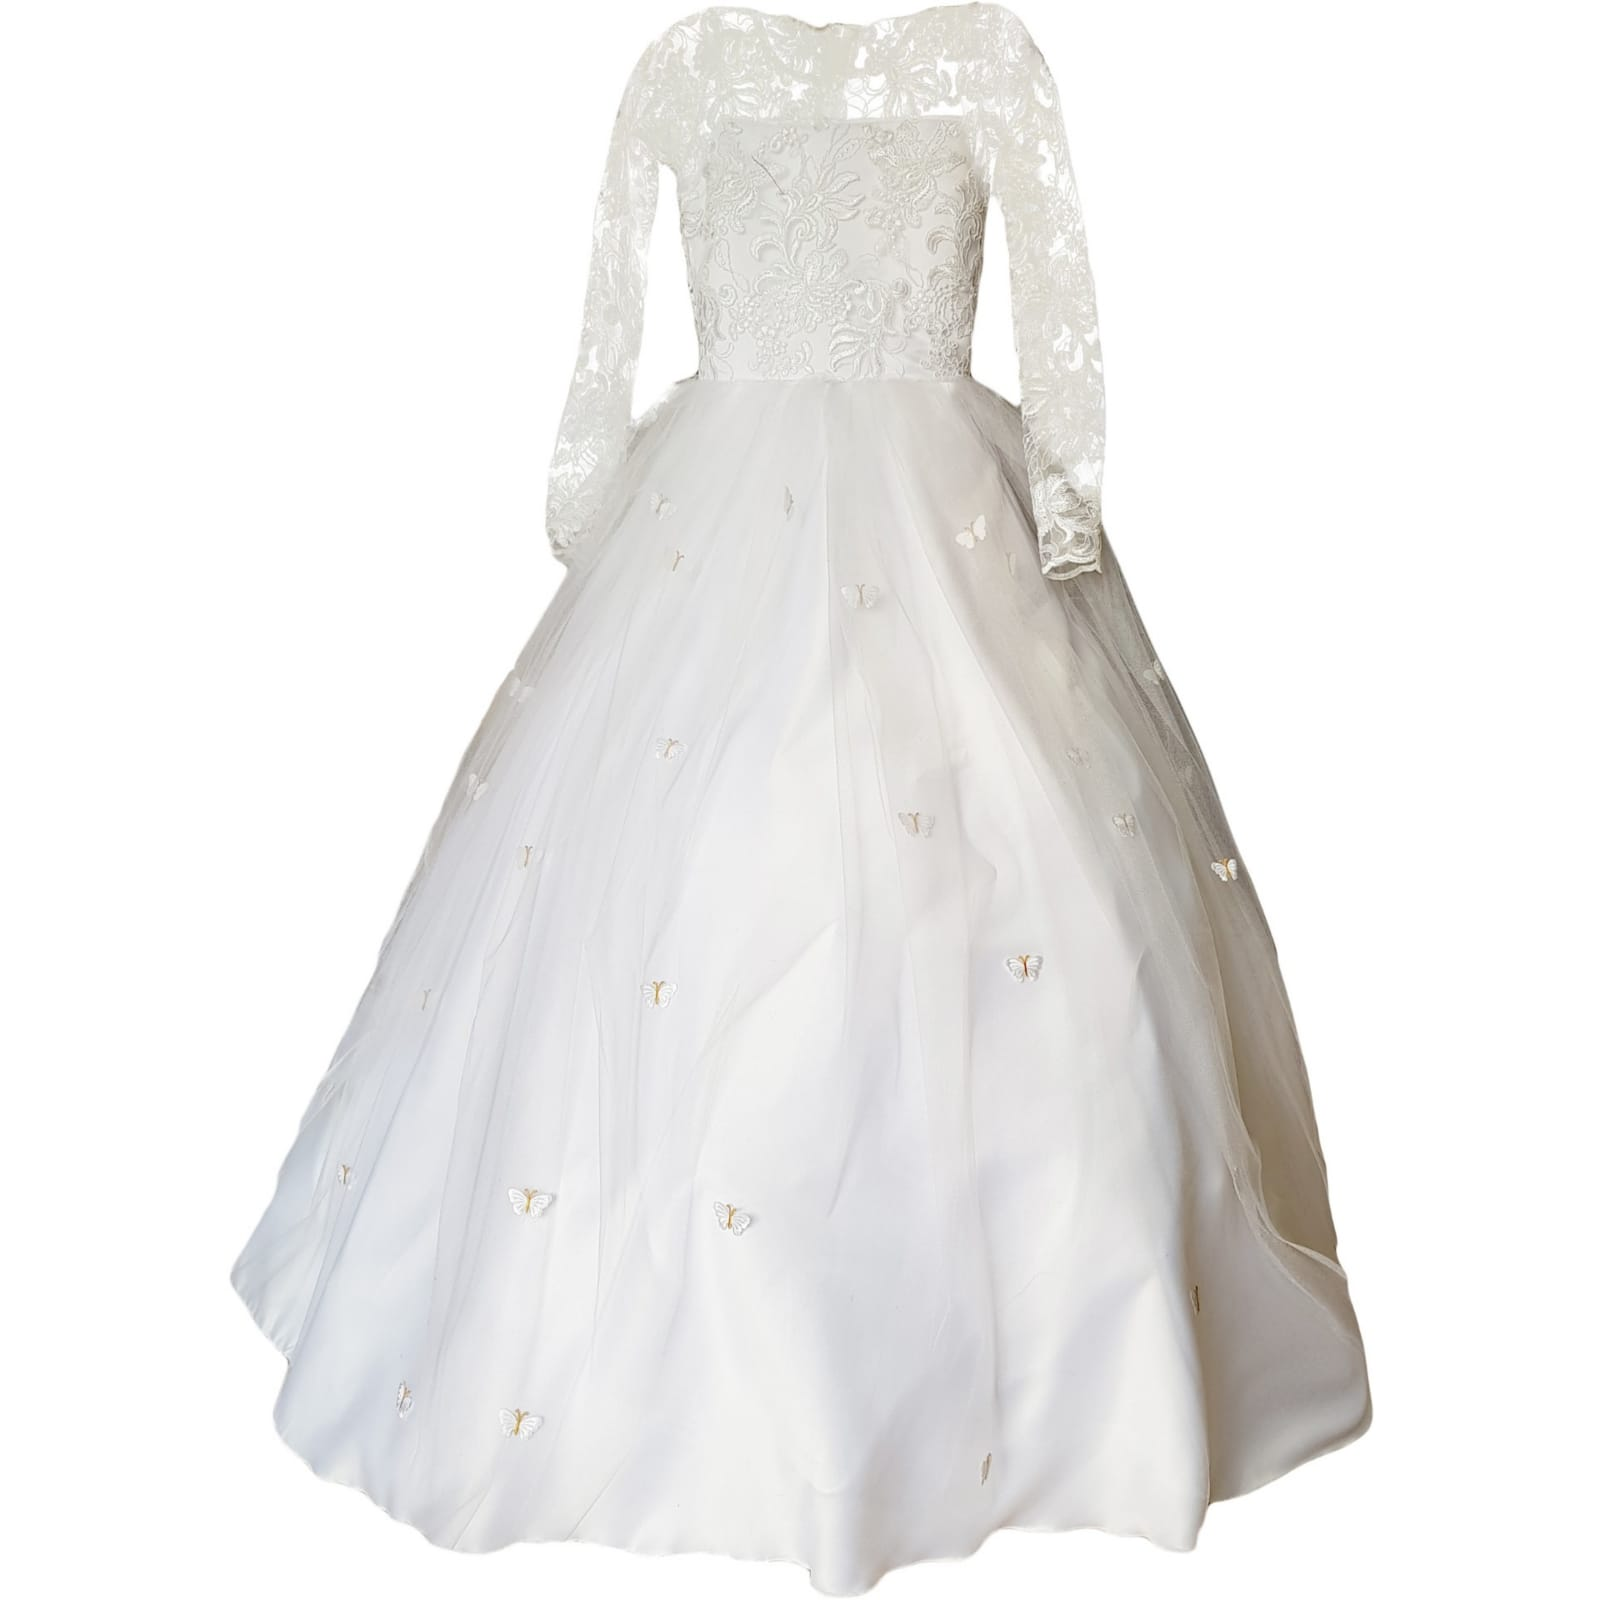 White holy communion ball gown dress 5 white holy communion ball gown dress. With a lace bodice. Long lace sleeves. Holy communion dress detailed with butterflies.